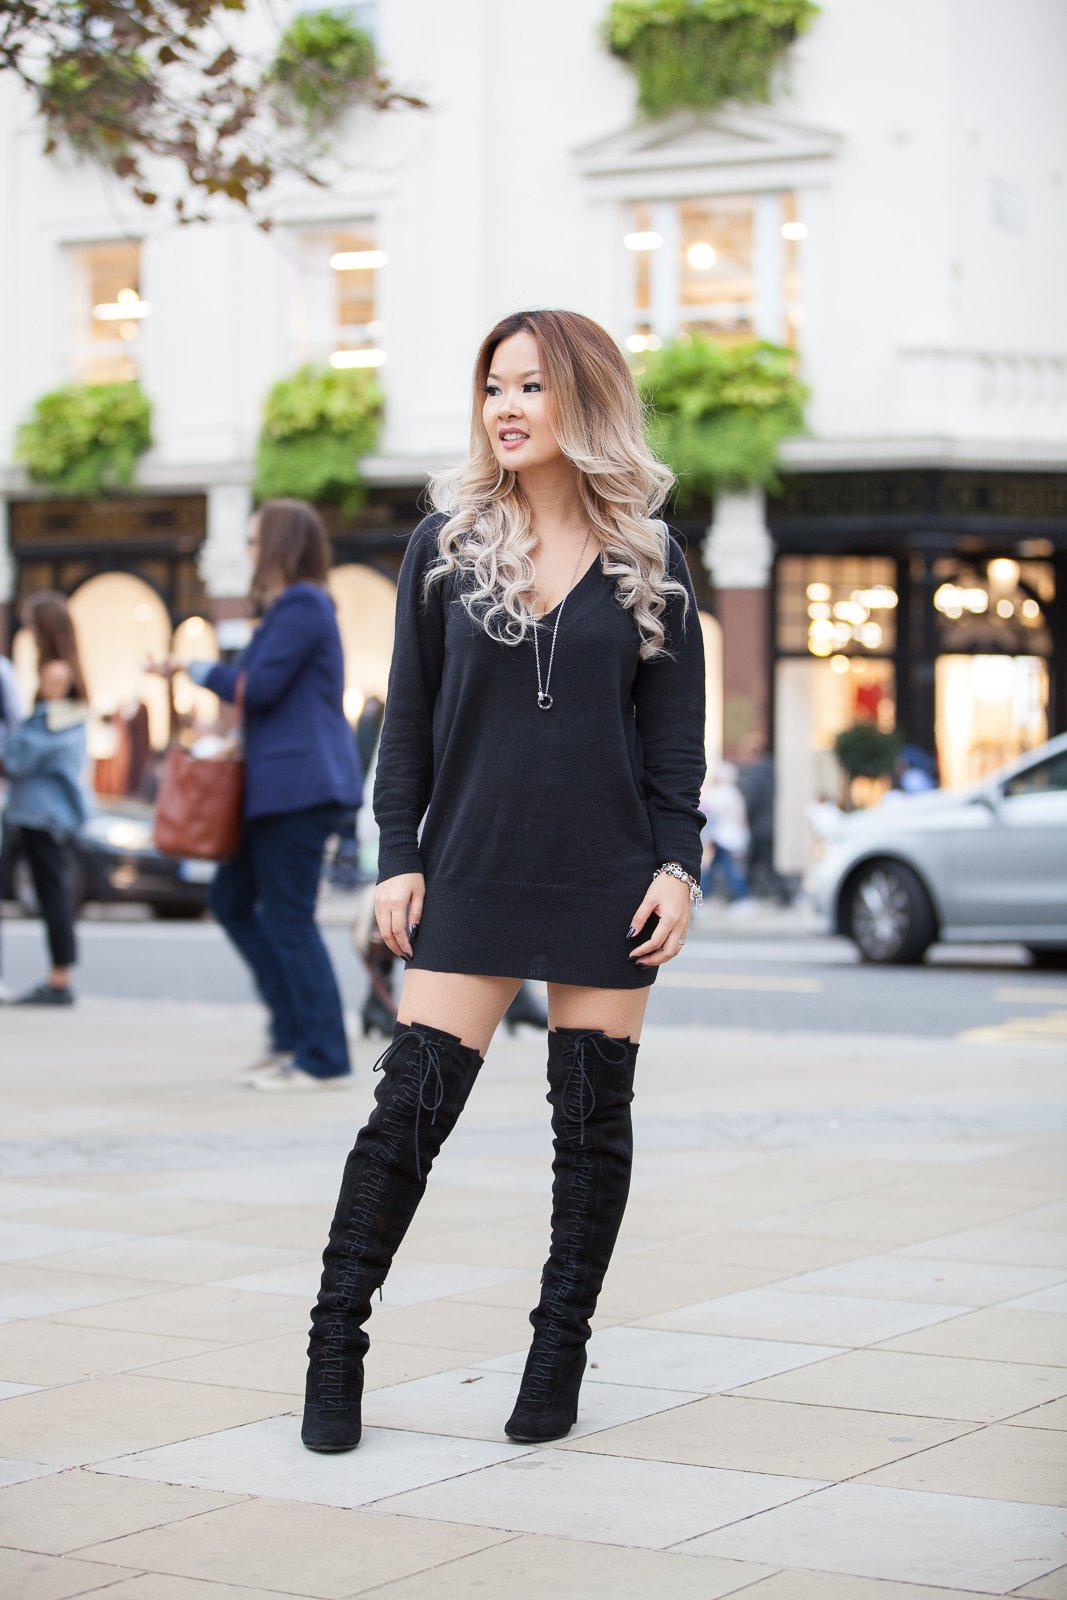 d2c87c4837b SCARLETT - Lace Up Over The Knee Boot £68.00. But can short girls ...